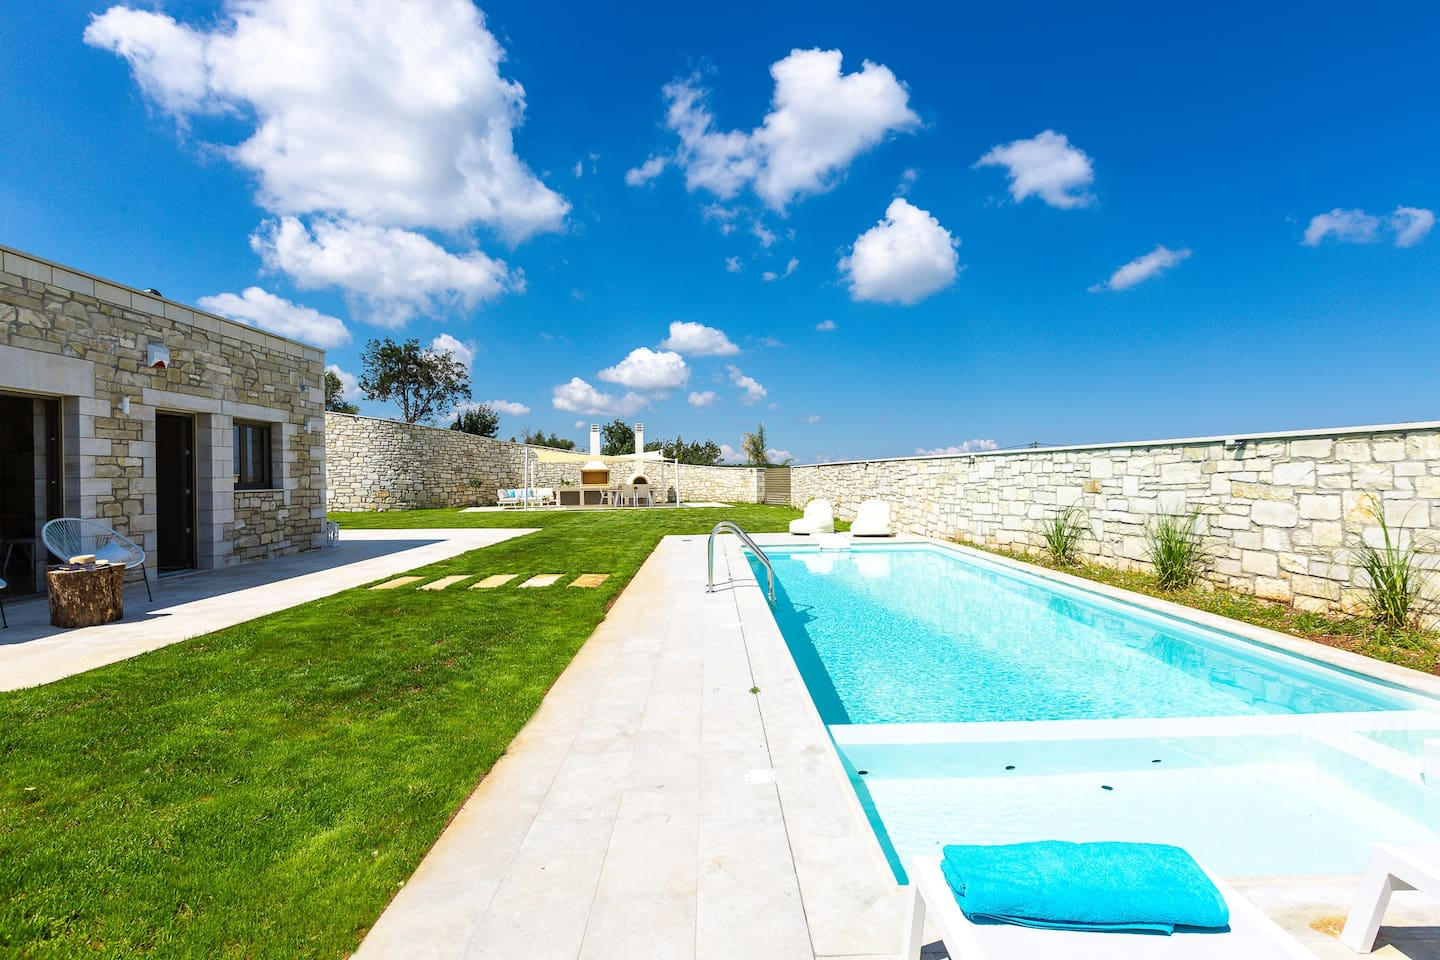 Impressive natural beauty and impeccable countryside views meet the luxurious Thalmargia Villa III, nestled in the picturesque, historical village of Episkopi.